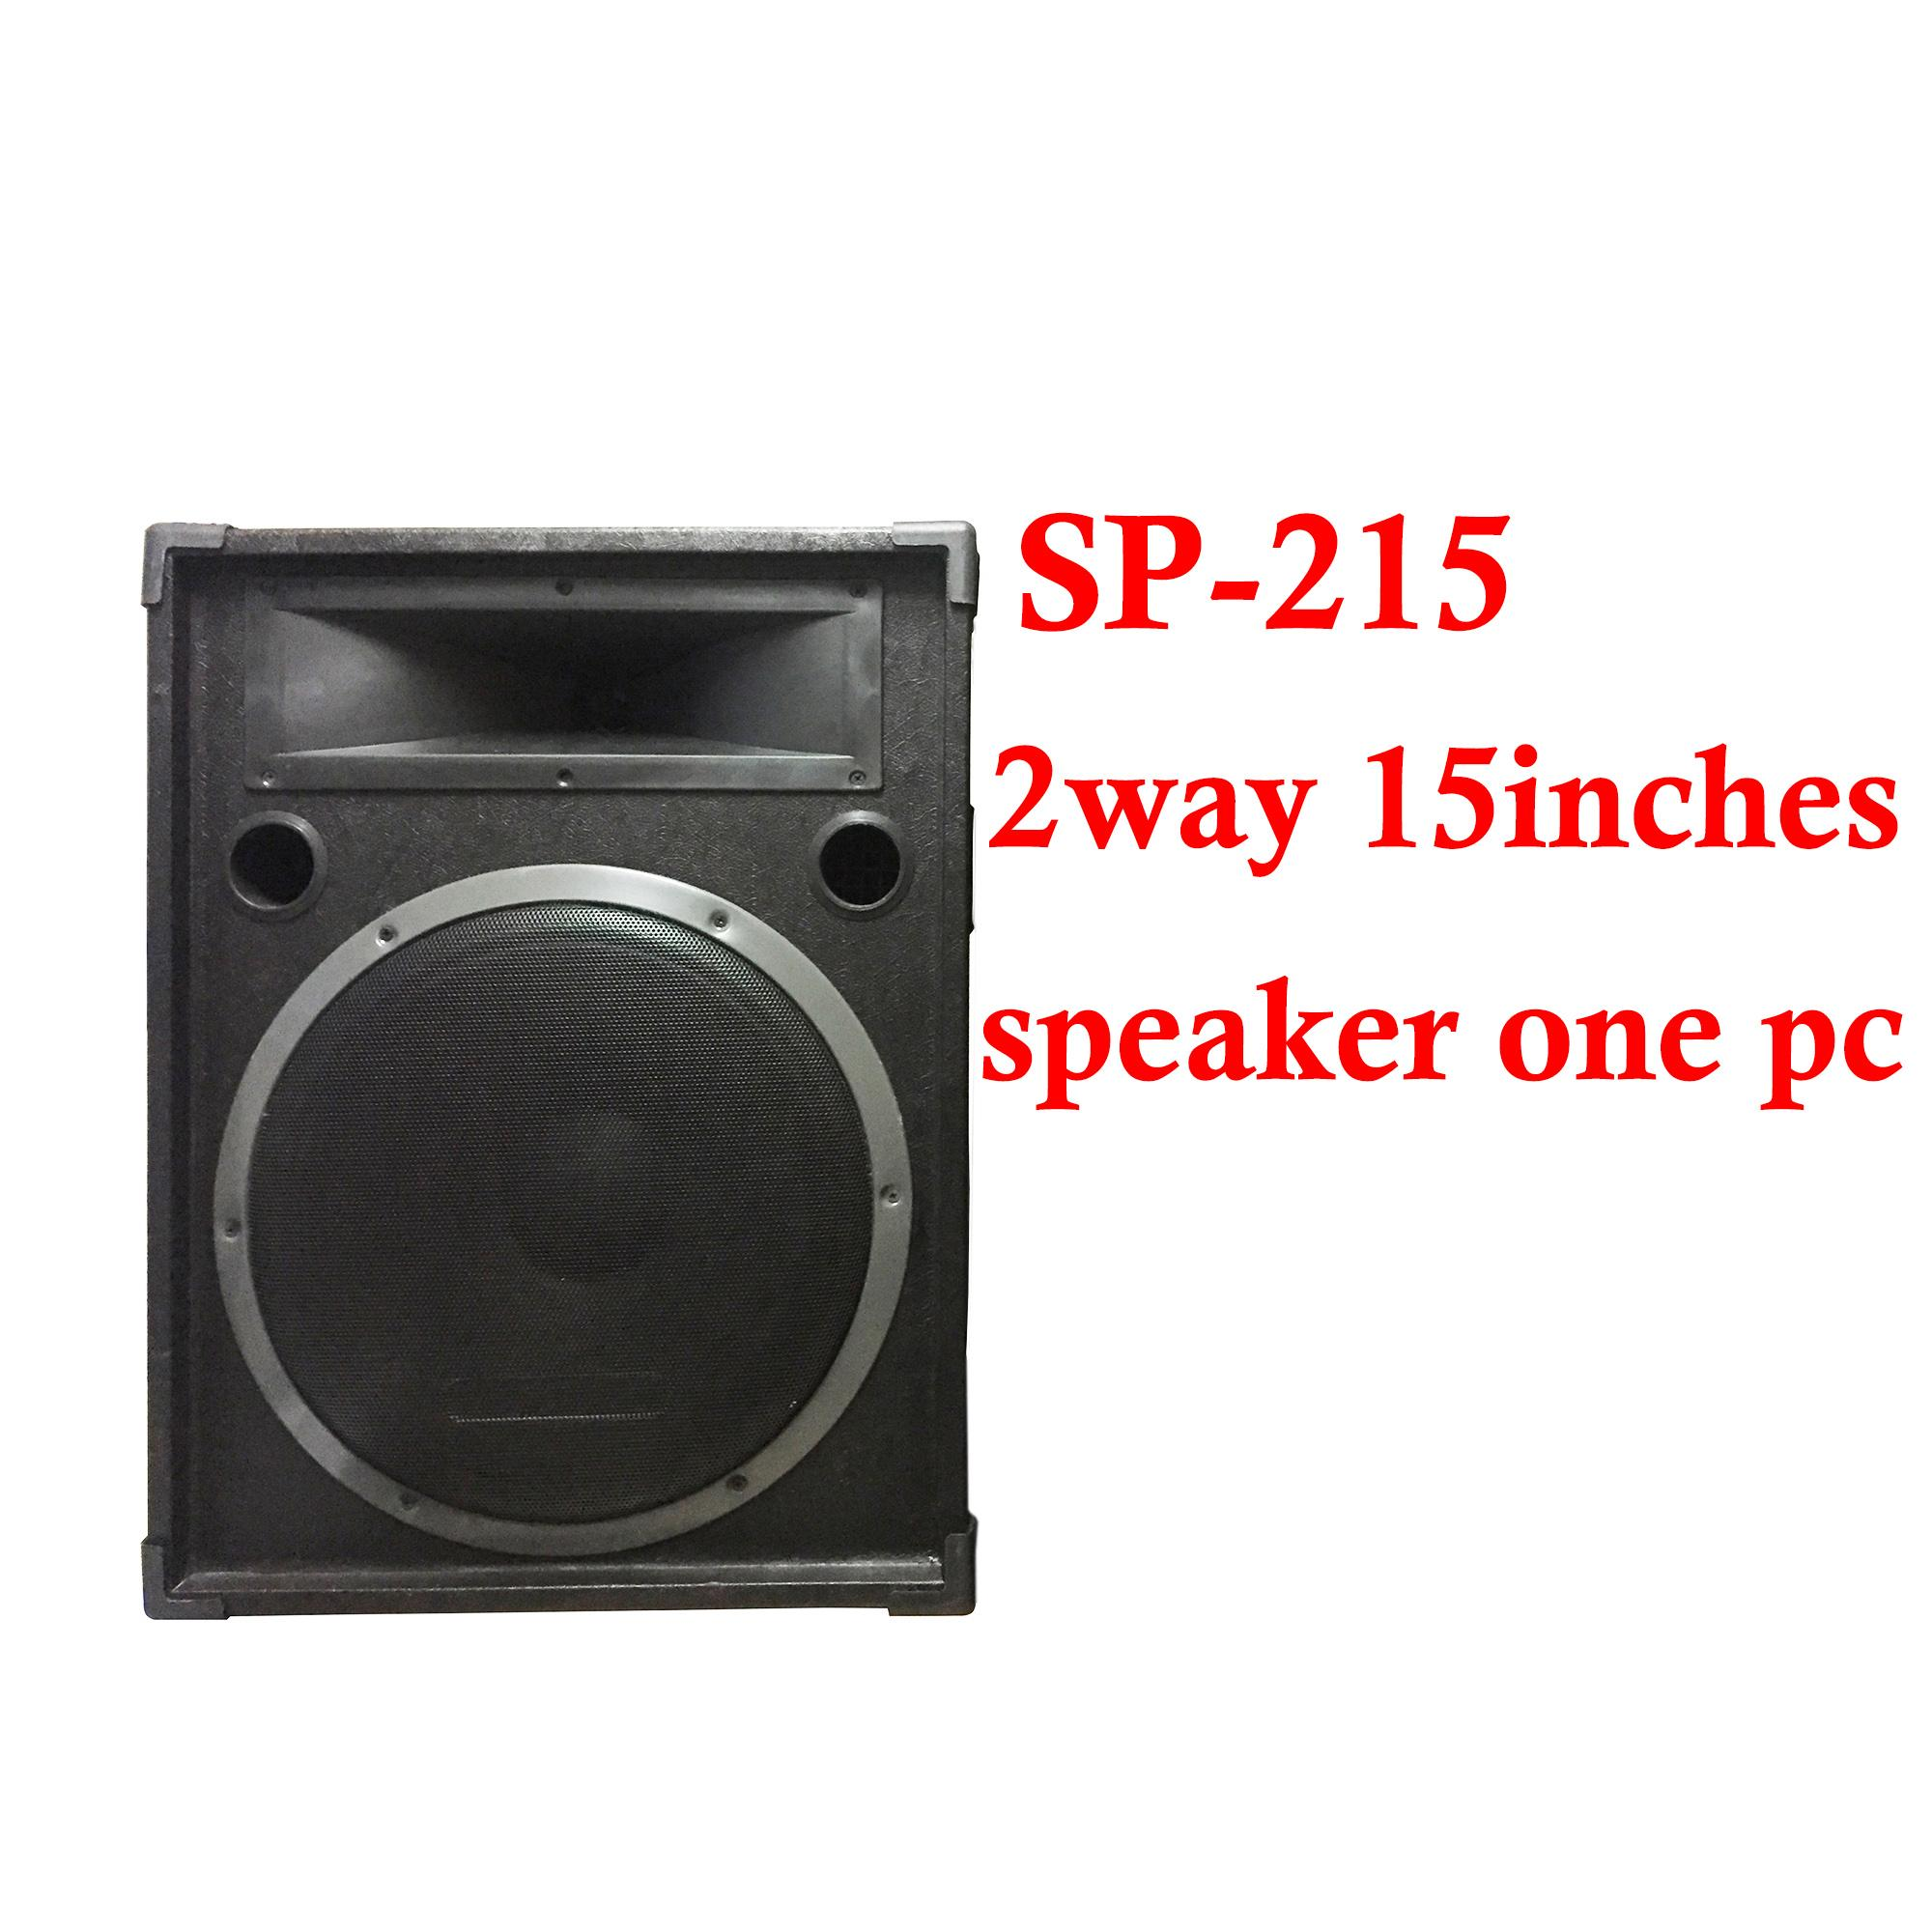 Subwoofer For Sale Speaker Prices Brands Specs In Powered Wiring 300w Power Amplifier Jms Sp 215 15inches 2way Black